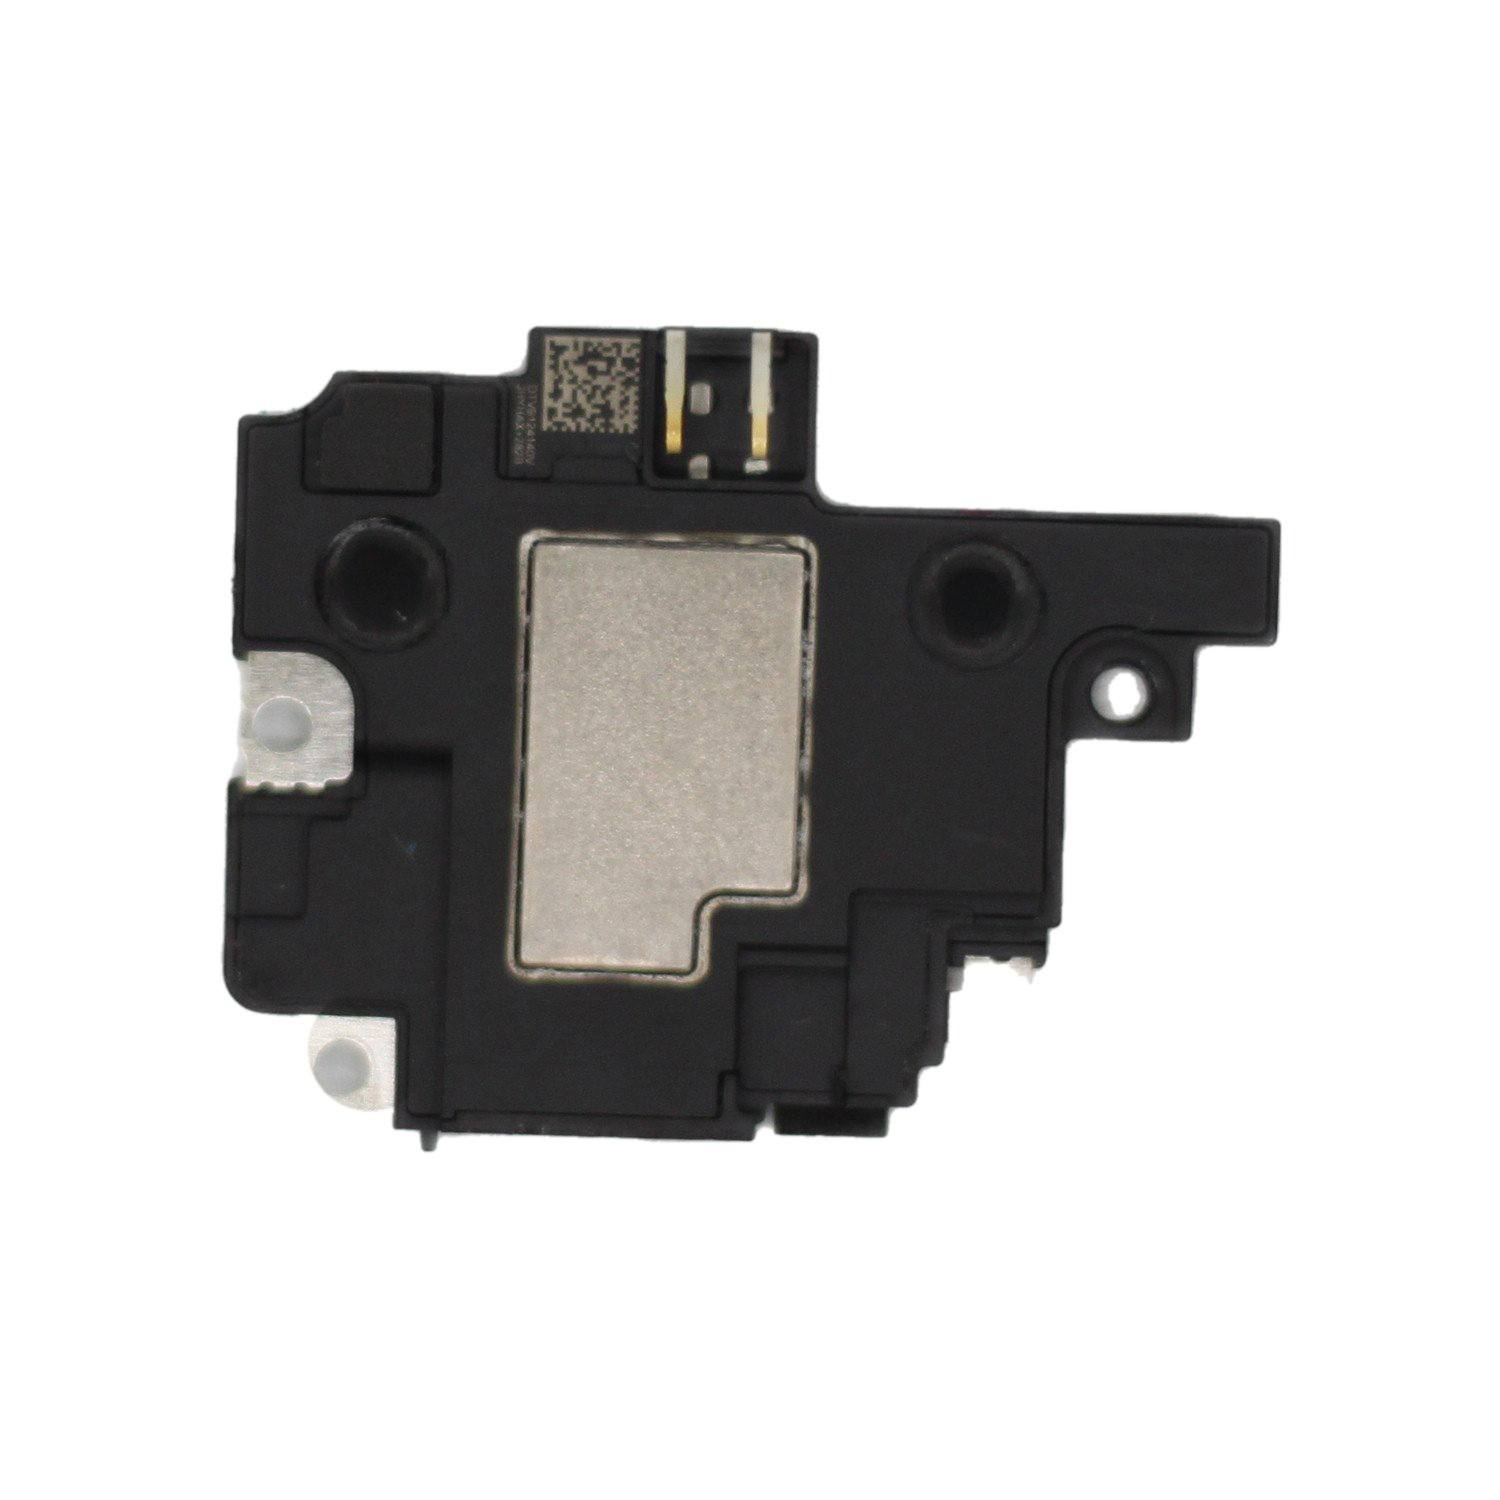 New Loud Speaker Ringer Buzzer replacement for iPhone XR A1984 A2106 A2108 Pic1